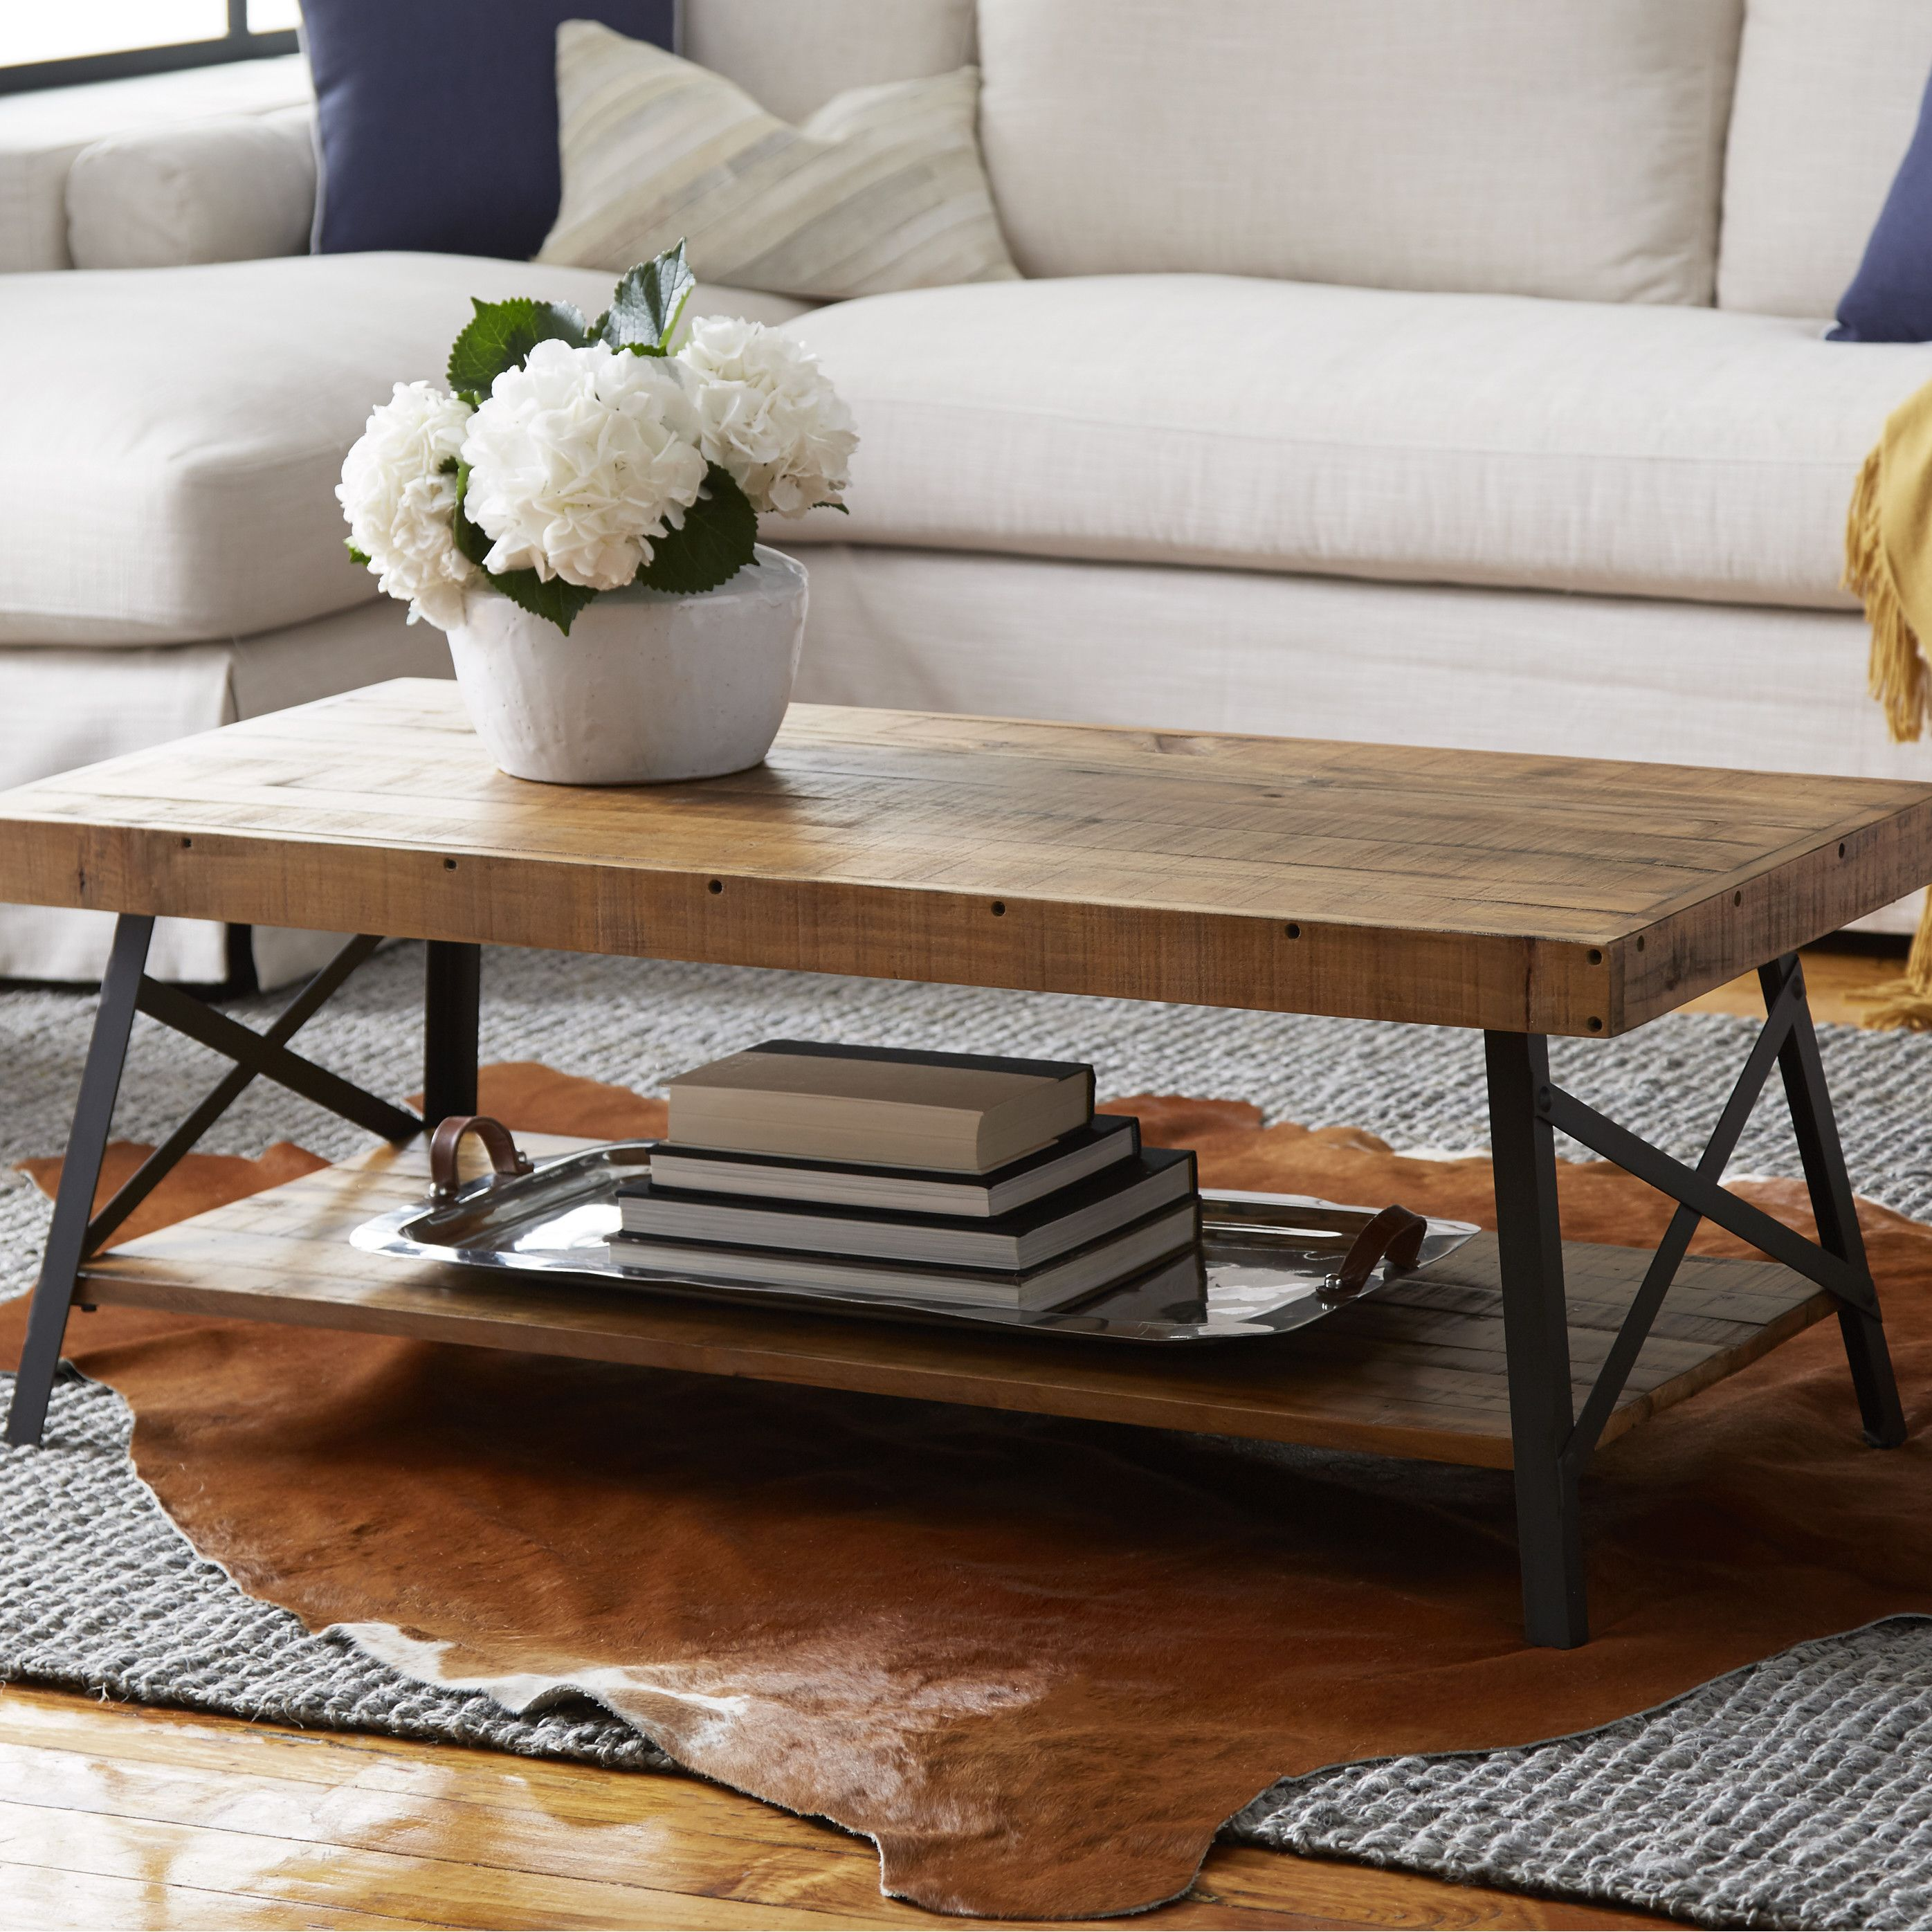 Kina Coffee Table With Storage